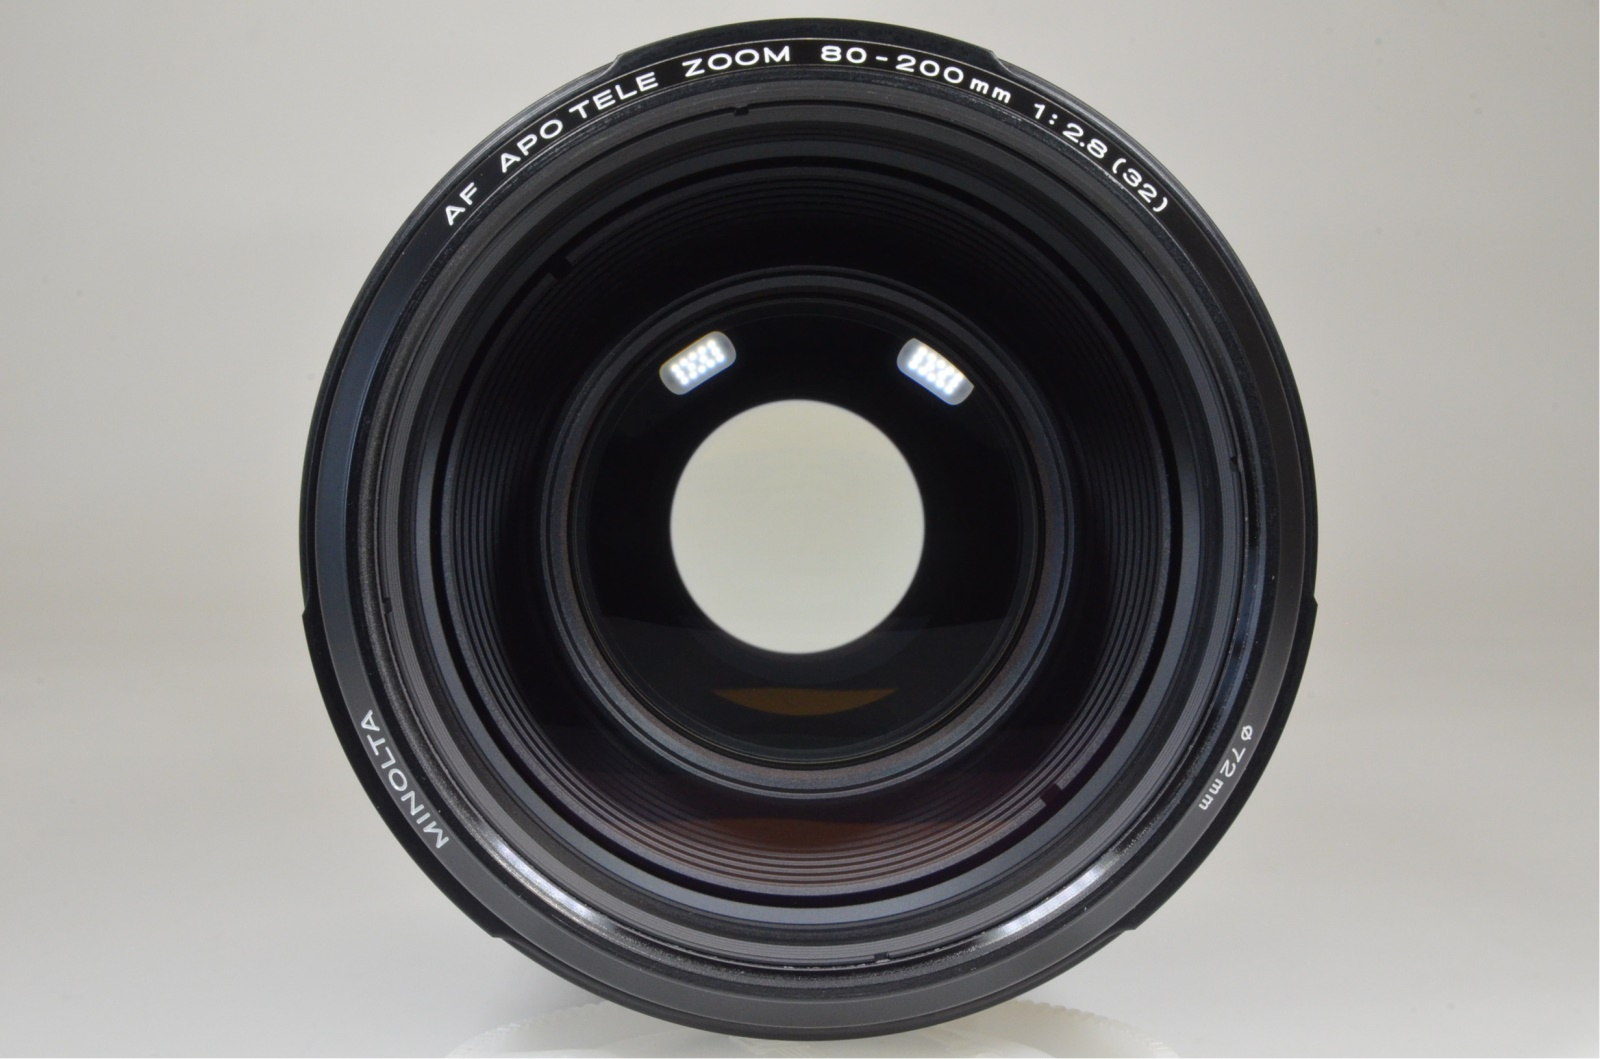 minolta high speed af apo 80-200mm f2.8 g lens sony japan with case